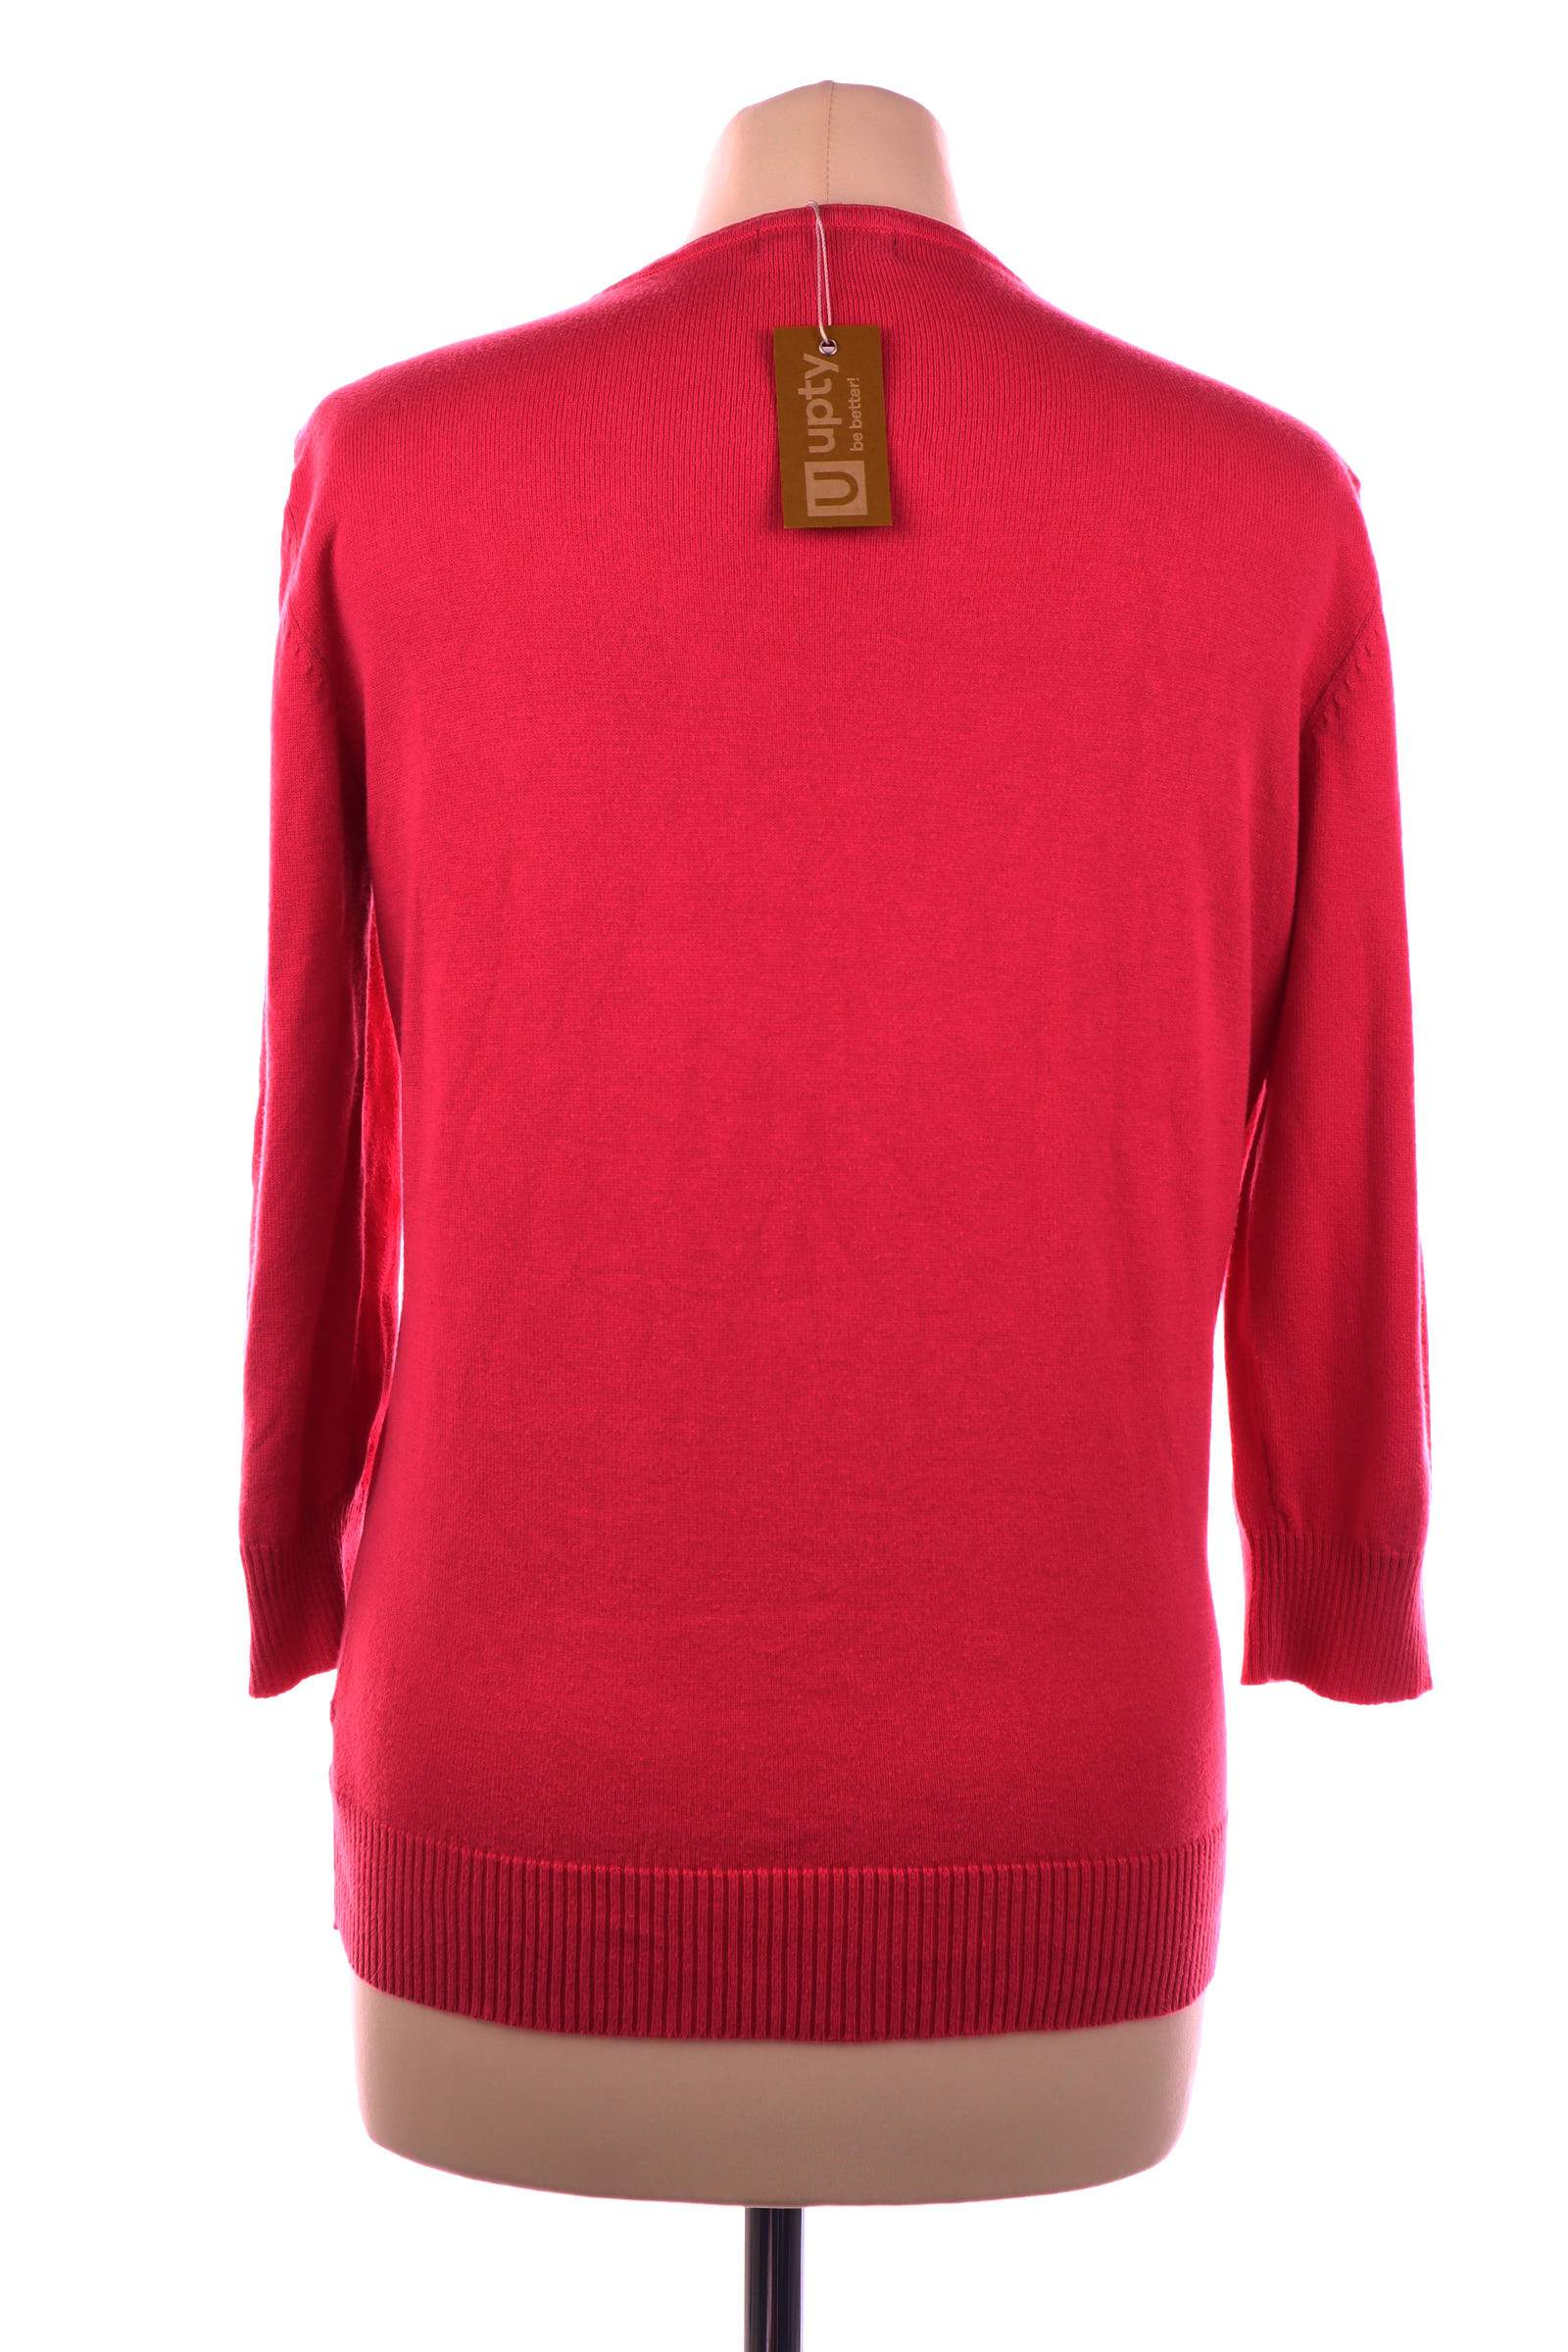 Dunnes Stores Pink Sweater